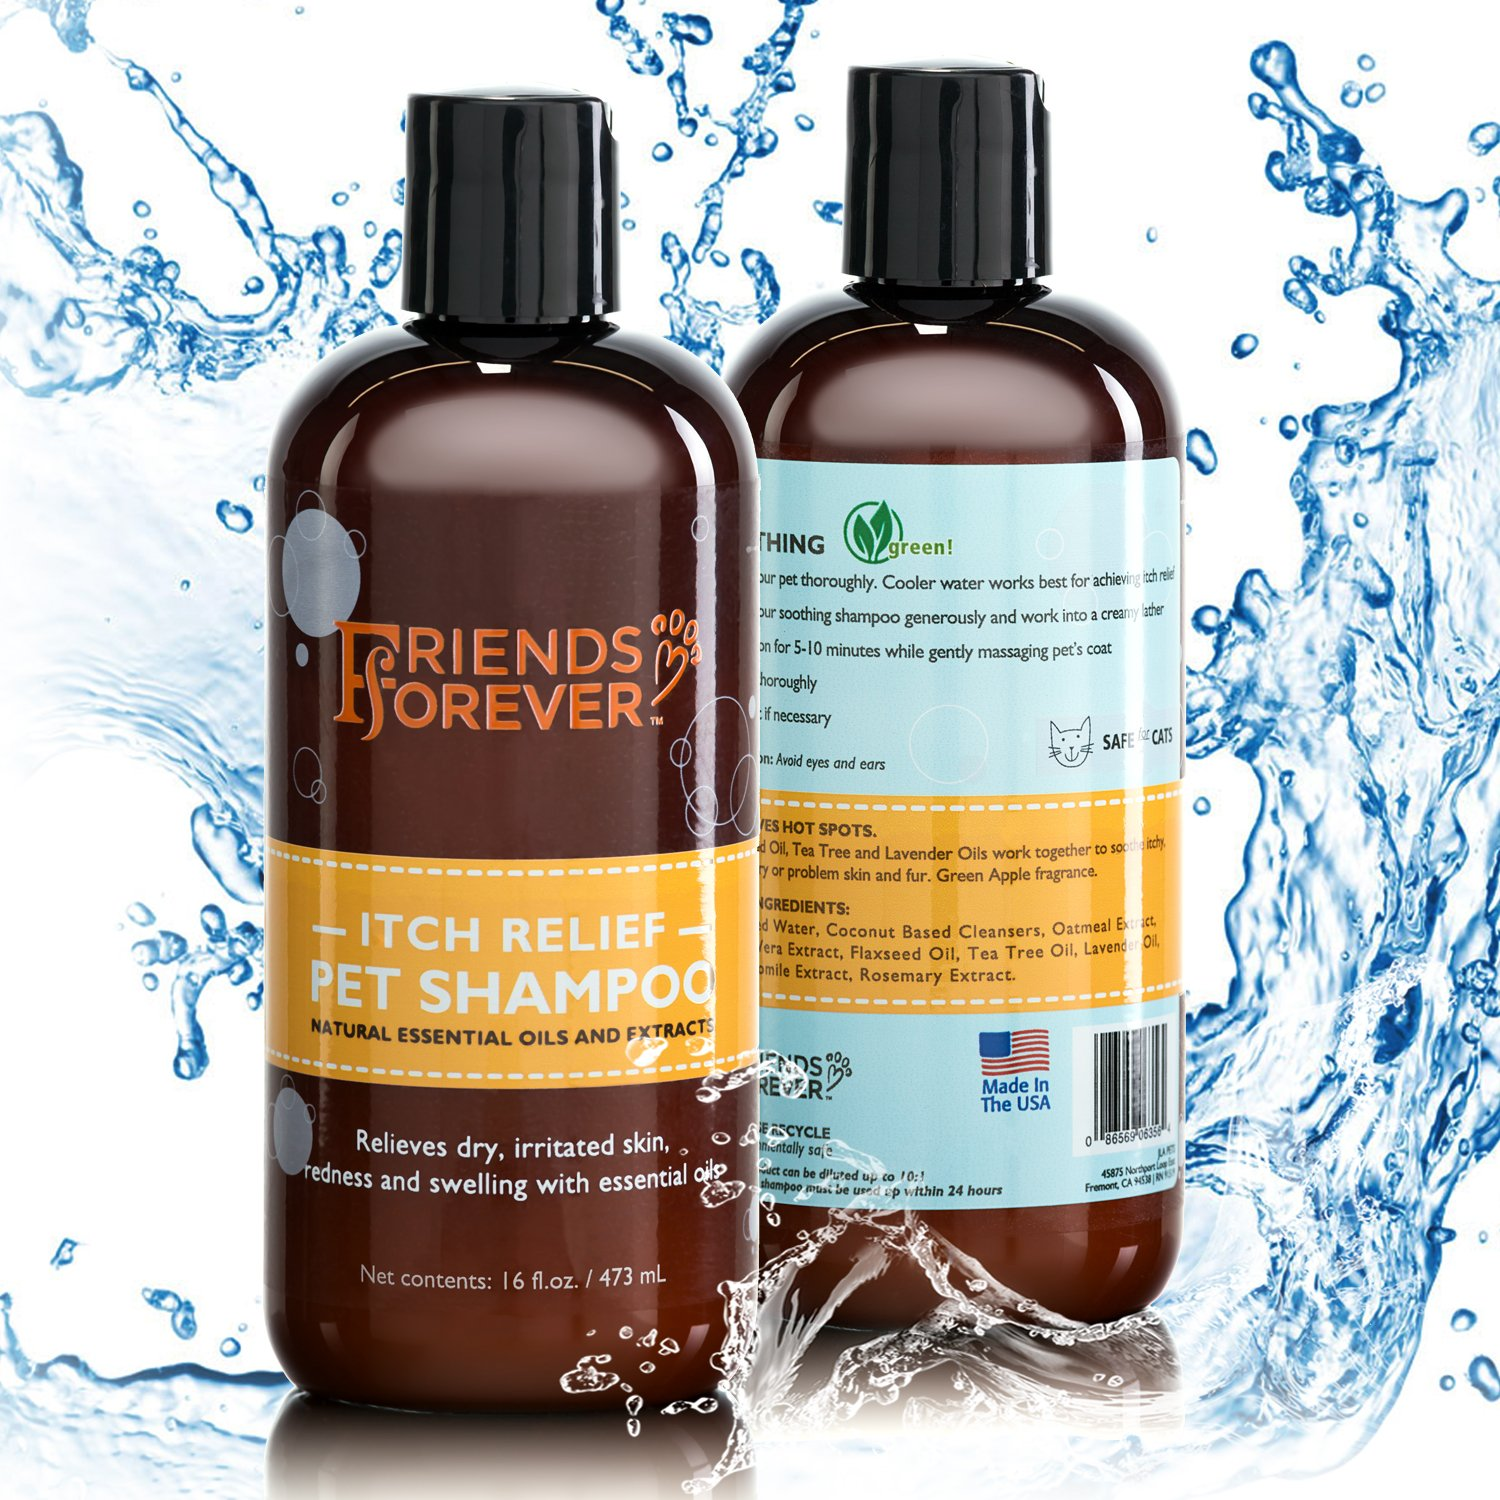 Friends Forever Natural Dog Shampoo Best Moisturizing Formula for Smelly Dogs, Shedding & Sensitive Dry Itchy Skin Hypoallergenic Soothing Coconut Base Conditioner Organic Oatmeal, Aloe, Lavender Oil